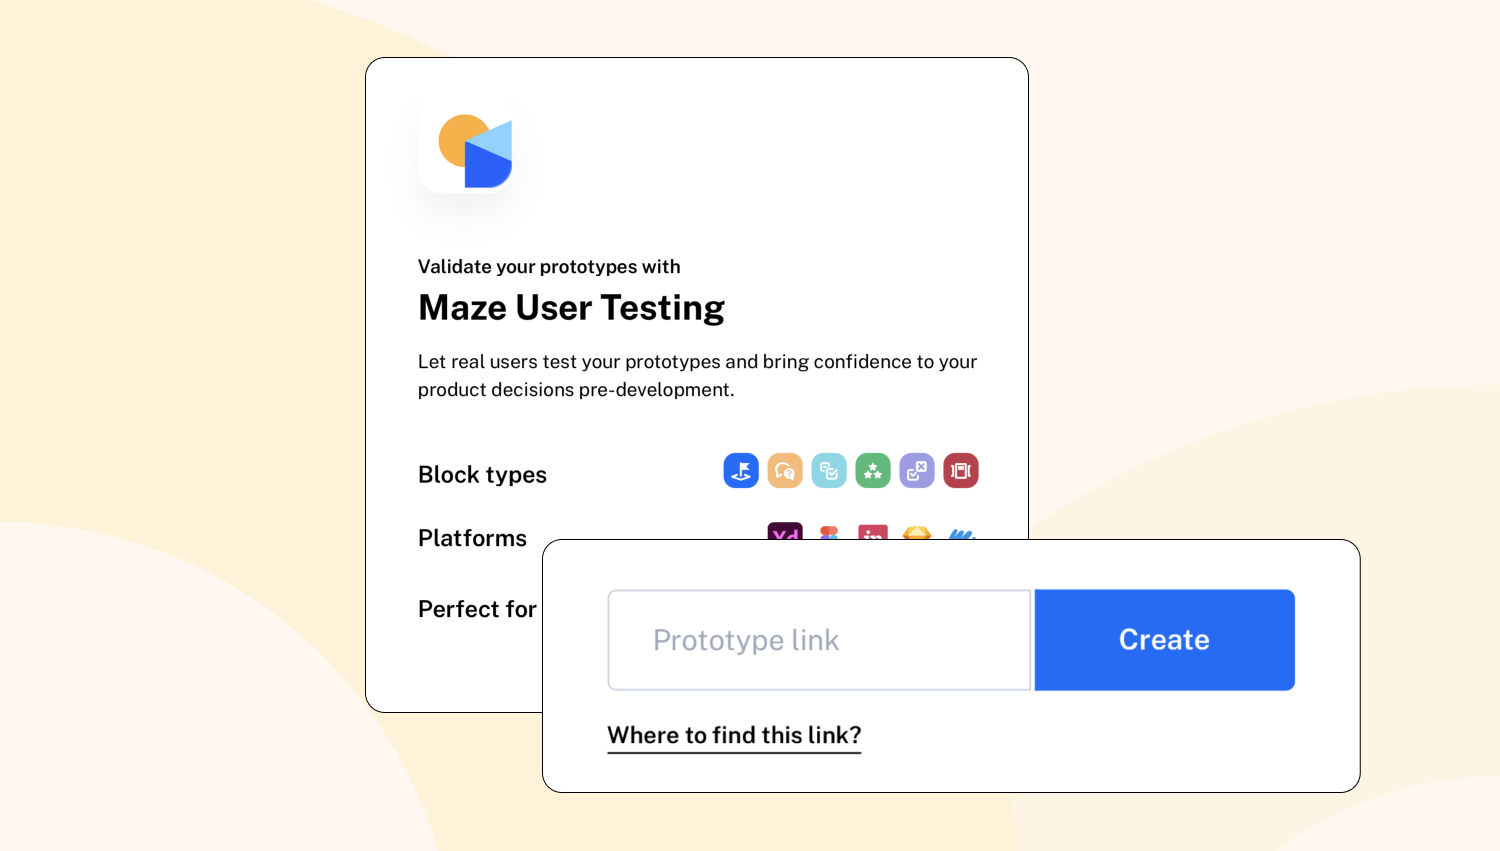 importing a prototype to Maze